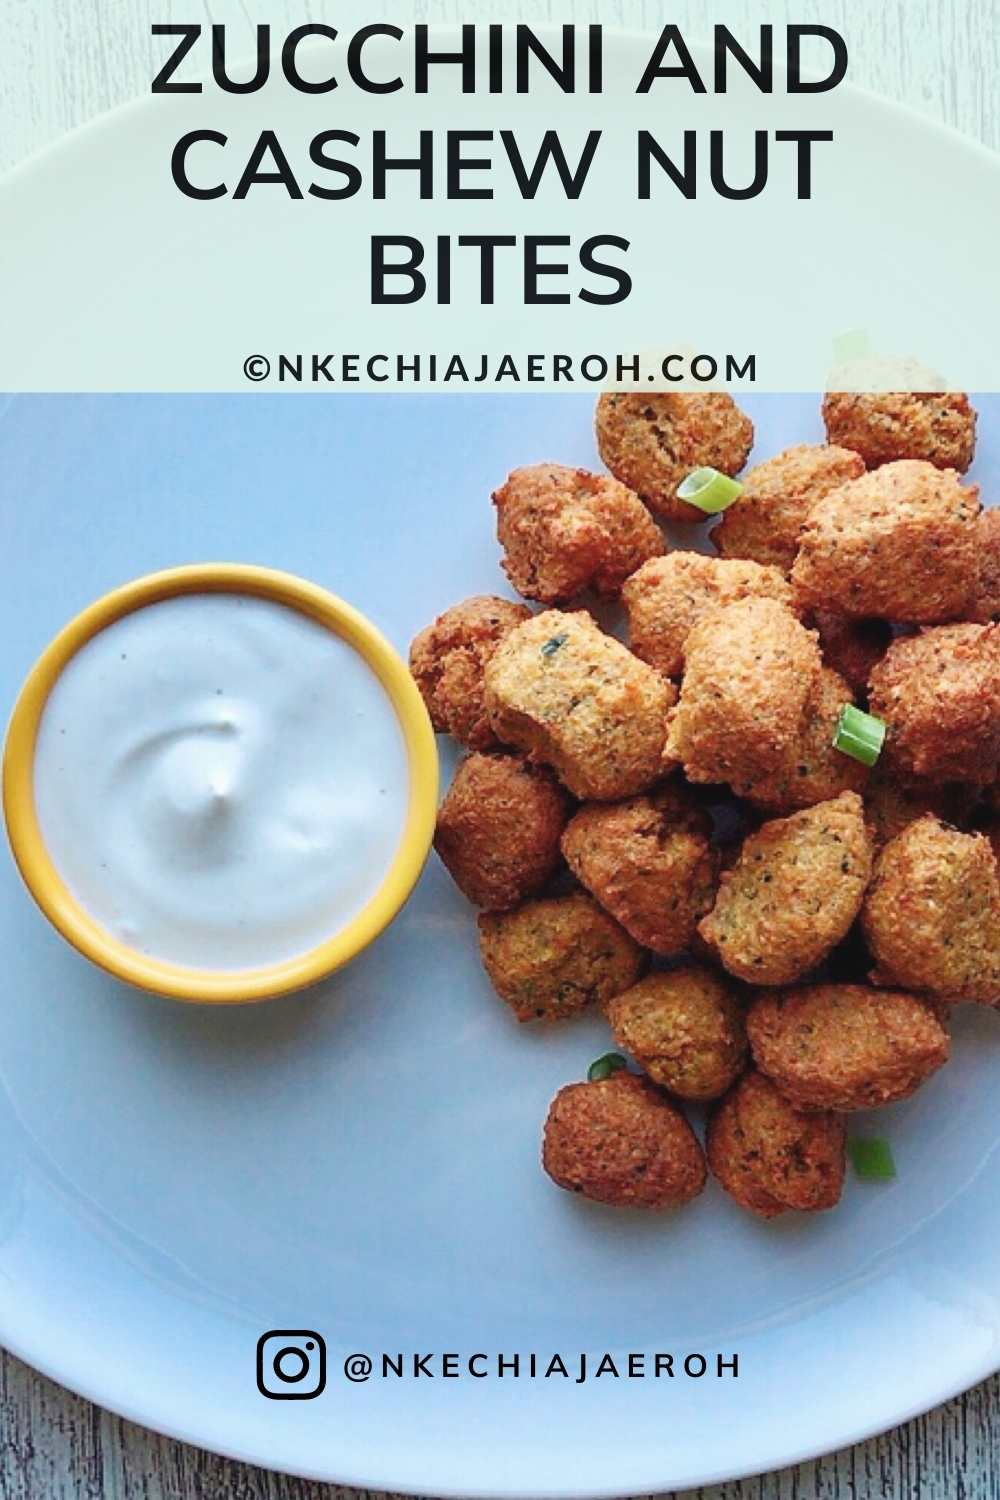 Healthy and Delicious Zucchini and Cashew Nut Bites. This is the hands-down the best zucchini snack recipe, made with some toasted cashew nuts, oatmeal flour, almond flour, egg, and fried in peanut oil. These bites or balls (whatever you choose to call them) are perfect for every member of the family! You can serve these as an appetizer!